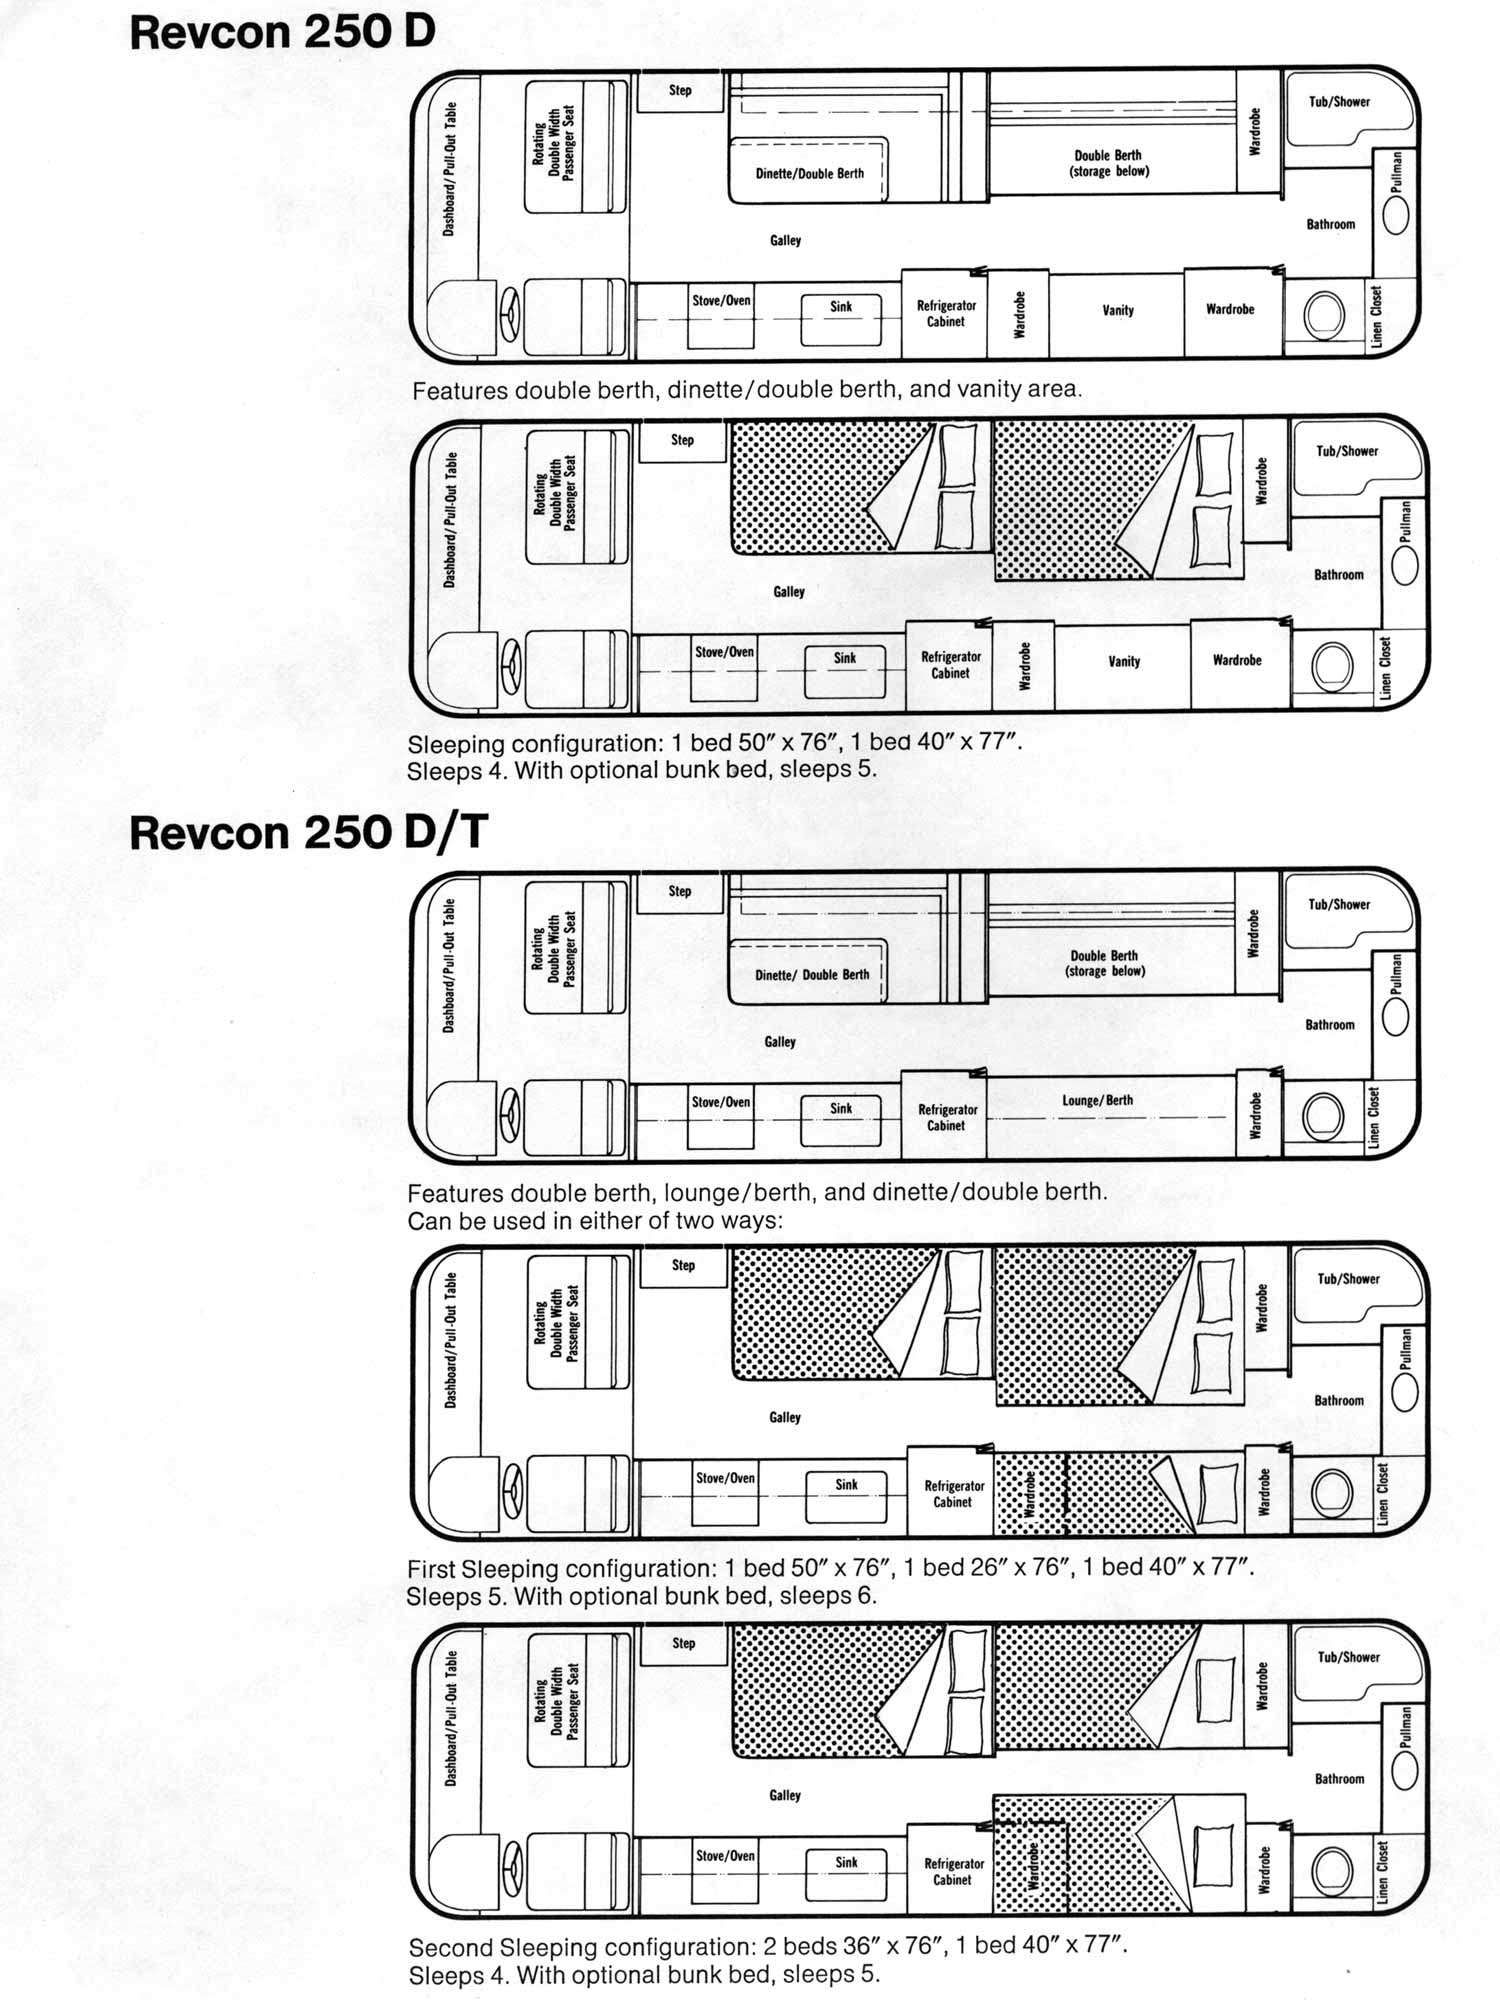 Pin by d Johnson on RevCon & Vintage Motorhomes | Pinterest ... Vintage Motorhome Floorplans on office floorplans, class c floorplans, hotel floorplans, home floorplans, trailer floorplans, 5th wheel floorplans, class a floorplans, house floorplans, toy hauler floorplans, kitchen floorplans,